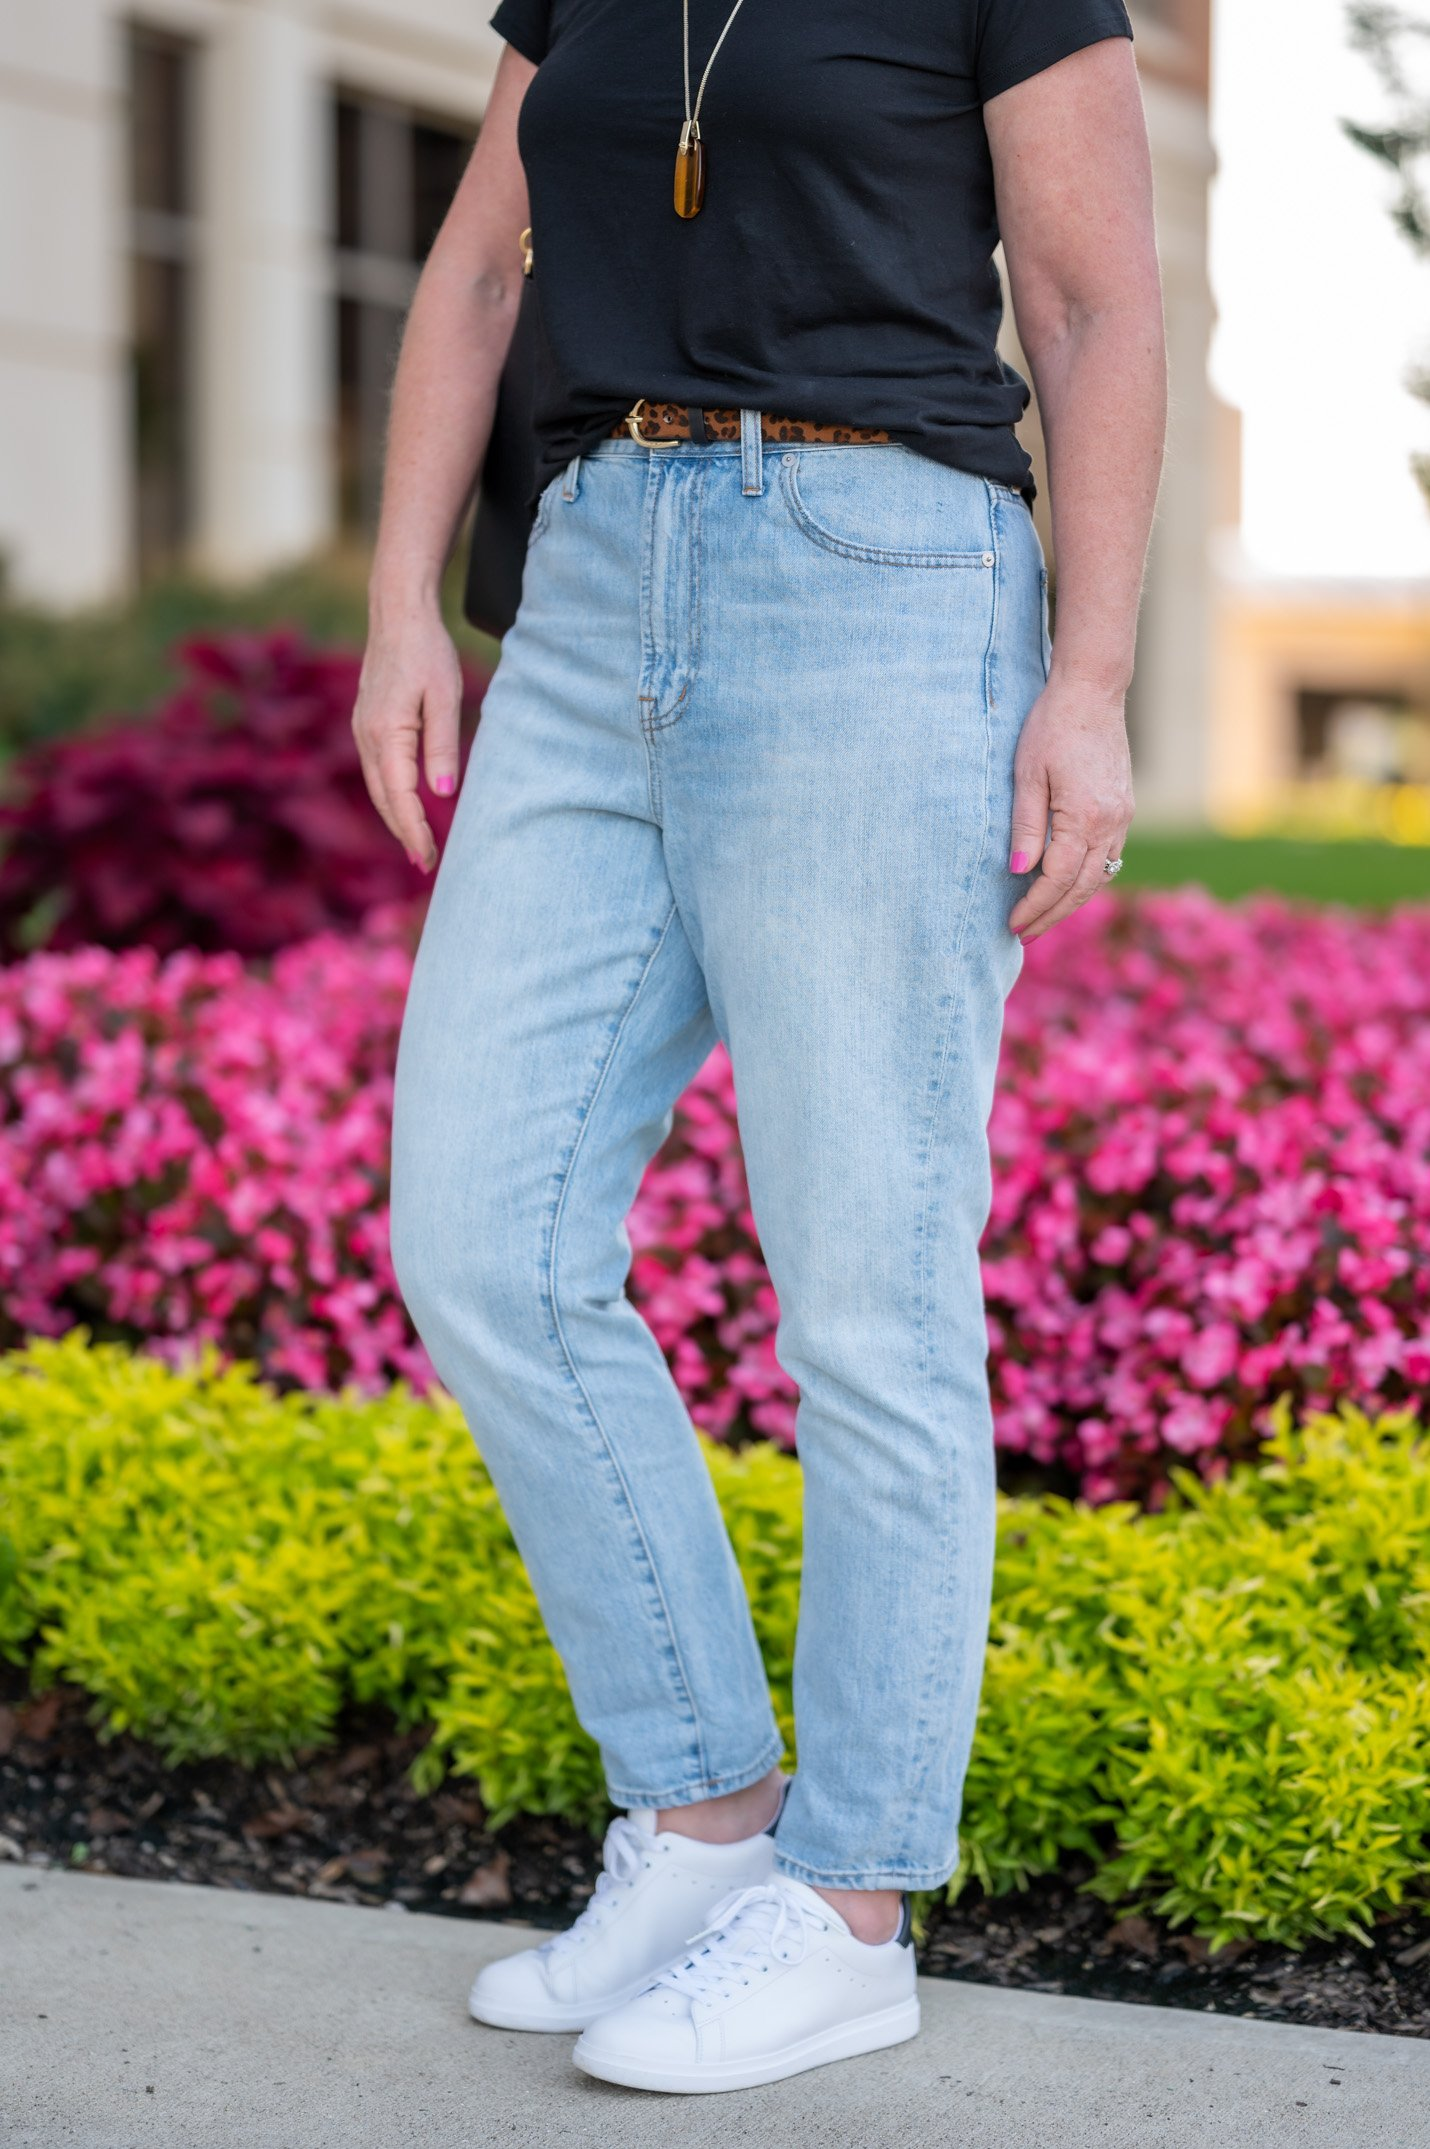 Summertime Uniform with Jeans